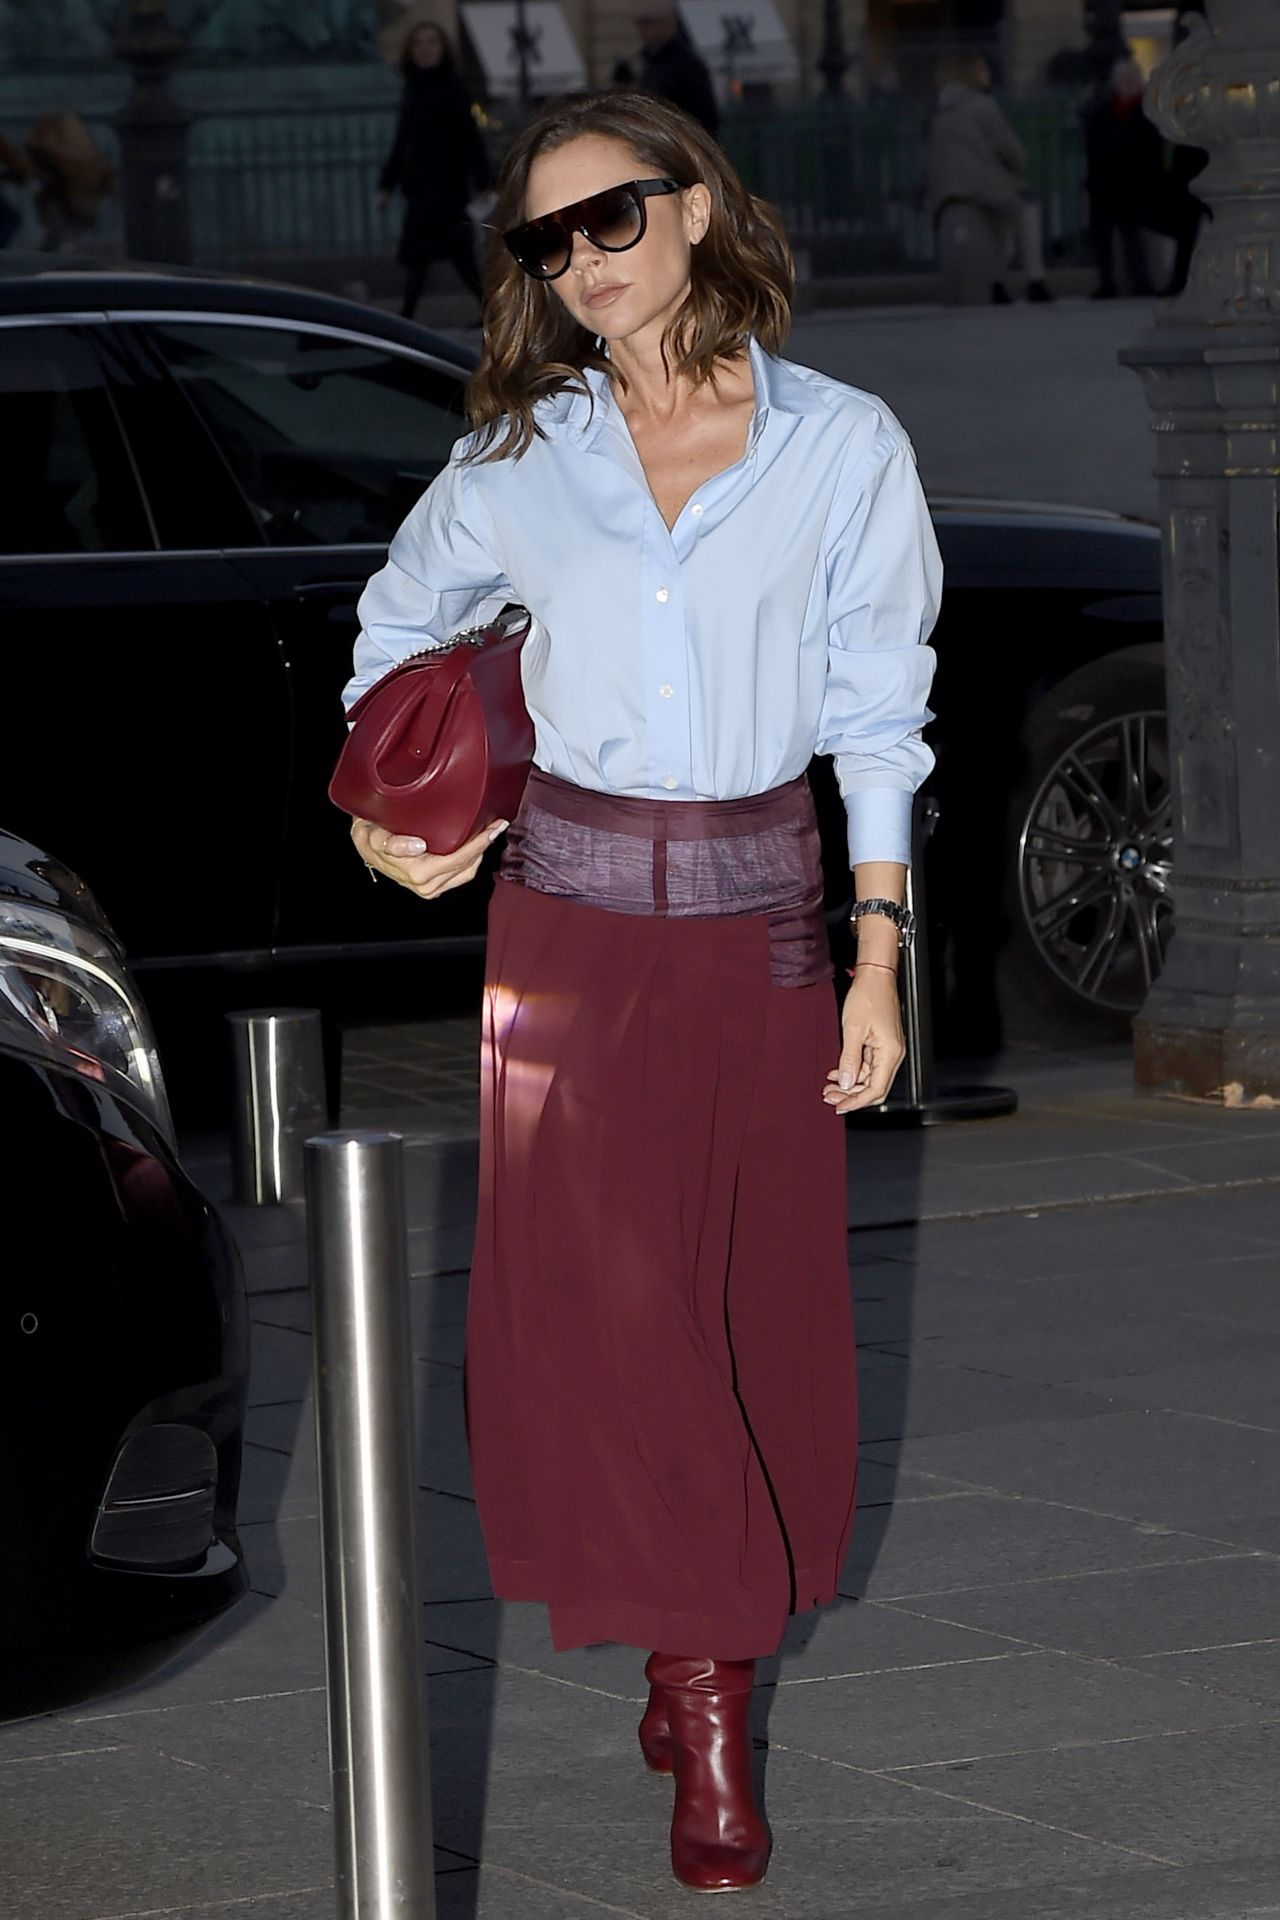 Victoria Beckham Style Returns To Her Paris Hotel 310 2017